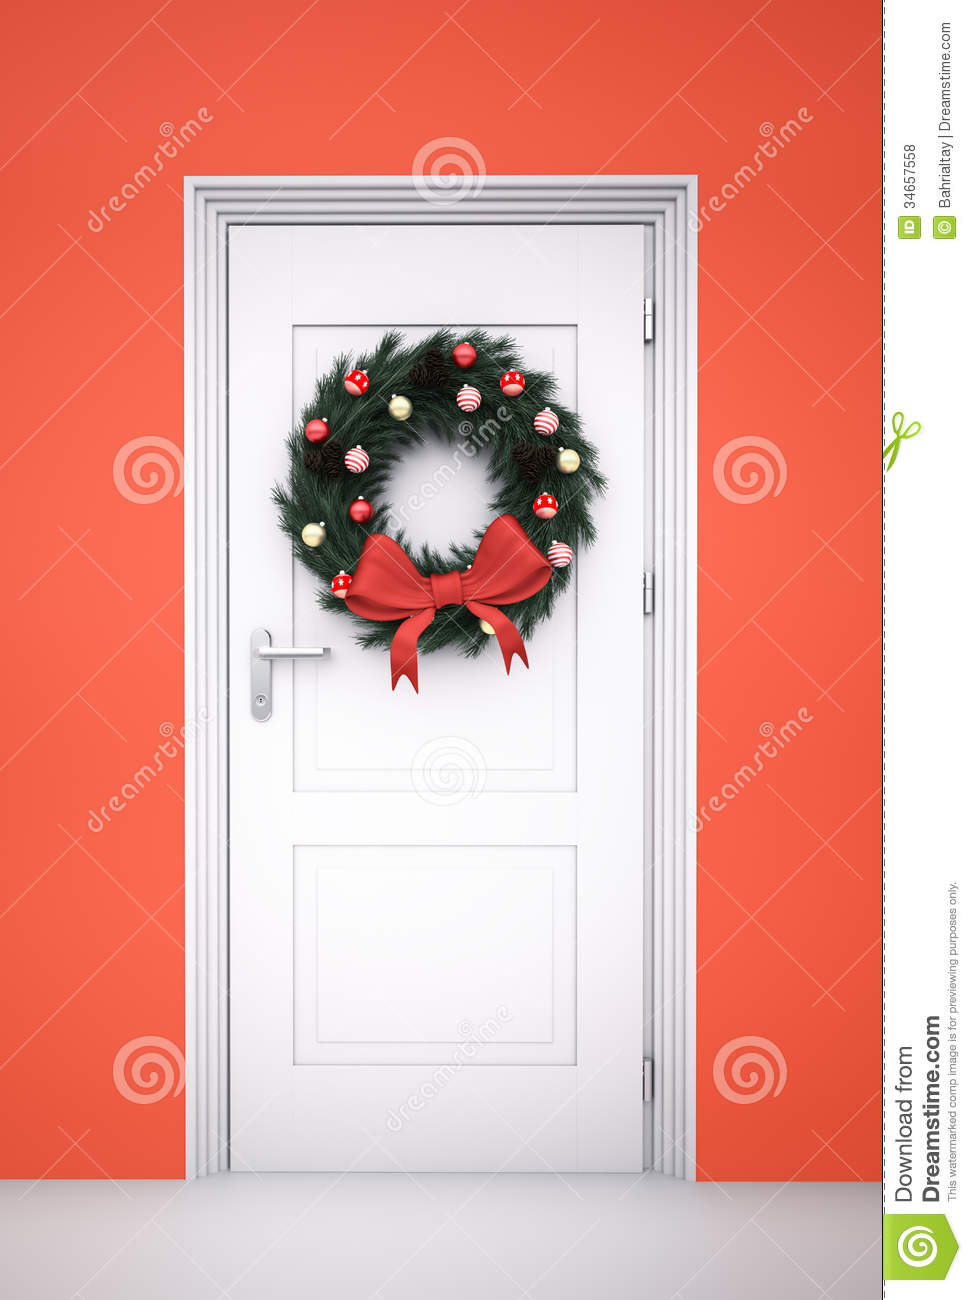 Le Meilleur Christmas Wreath On White Door Stock Photo Image Of Ce Mois Ci